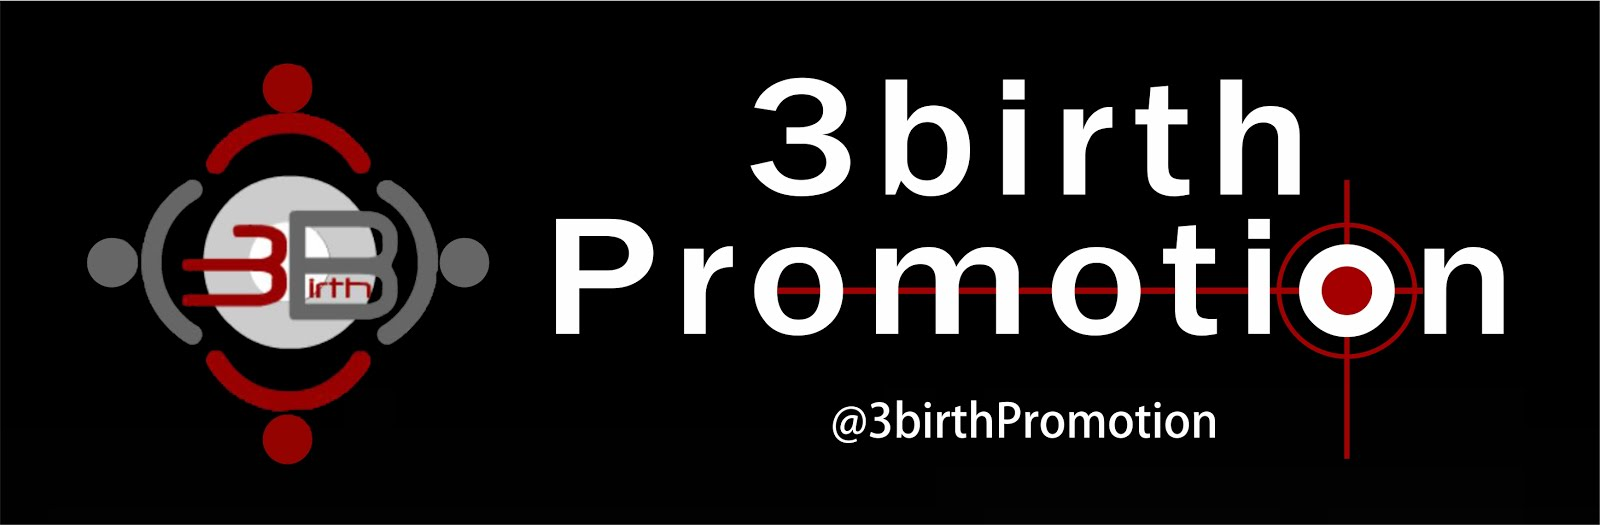 3birth Promotion